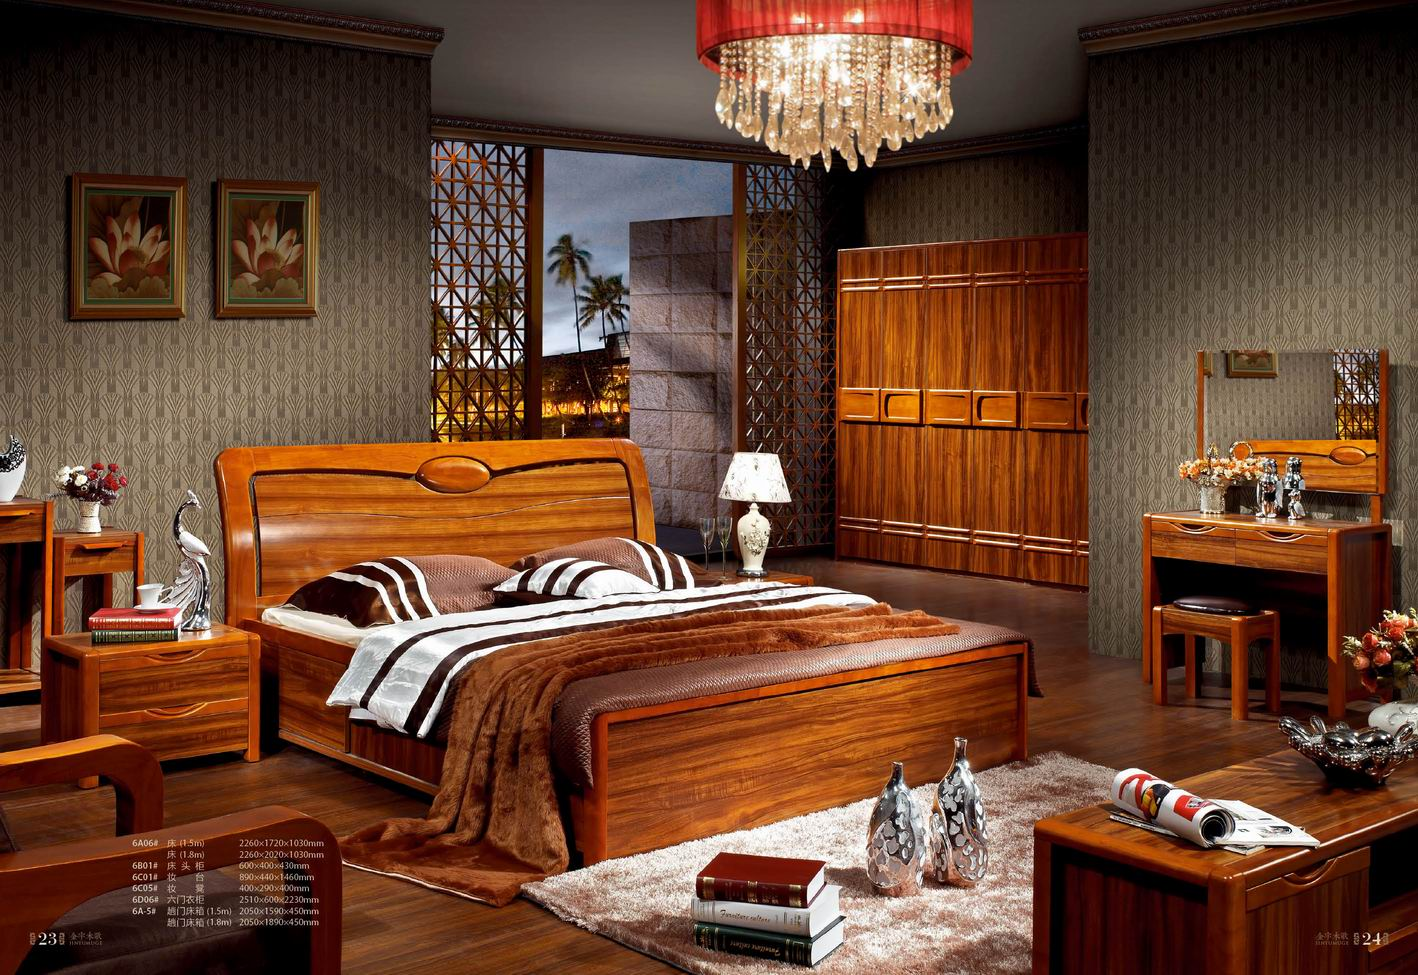 Amish Alley: Veenered Bedroom Furniture - A Beautiful ...